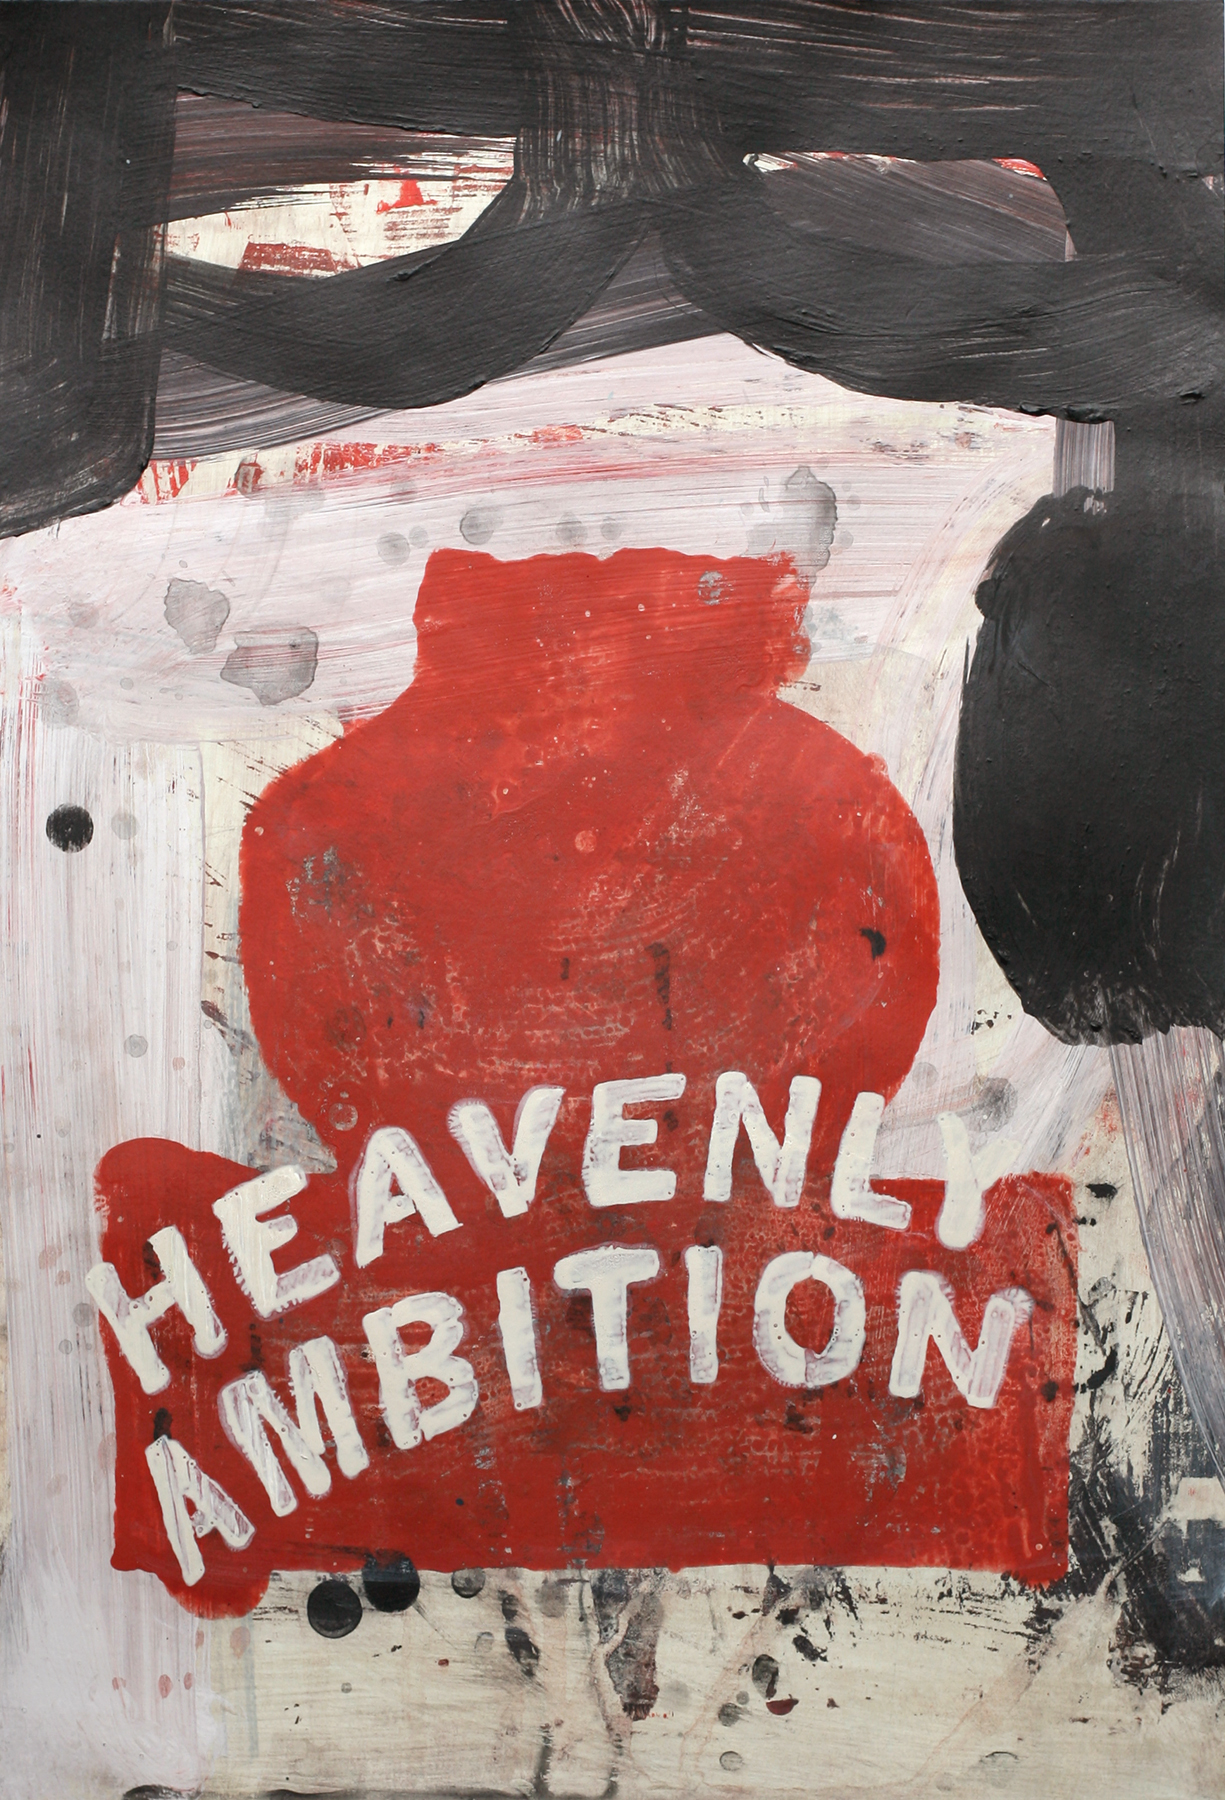 Heavenly Ambition